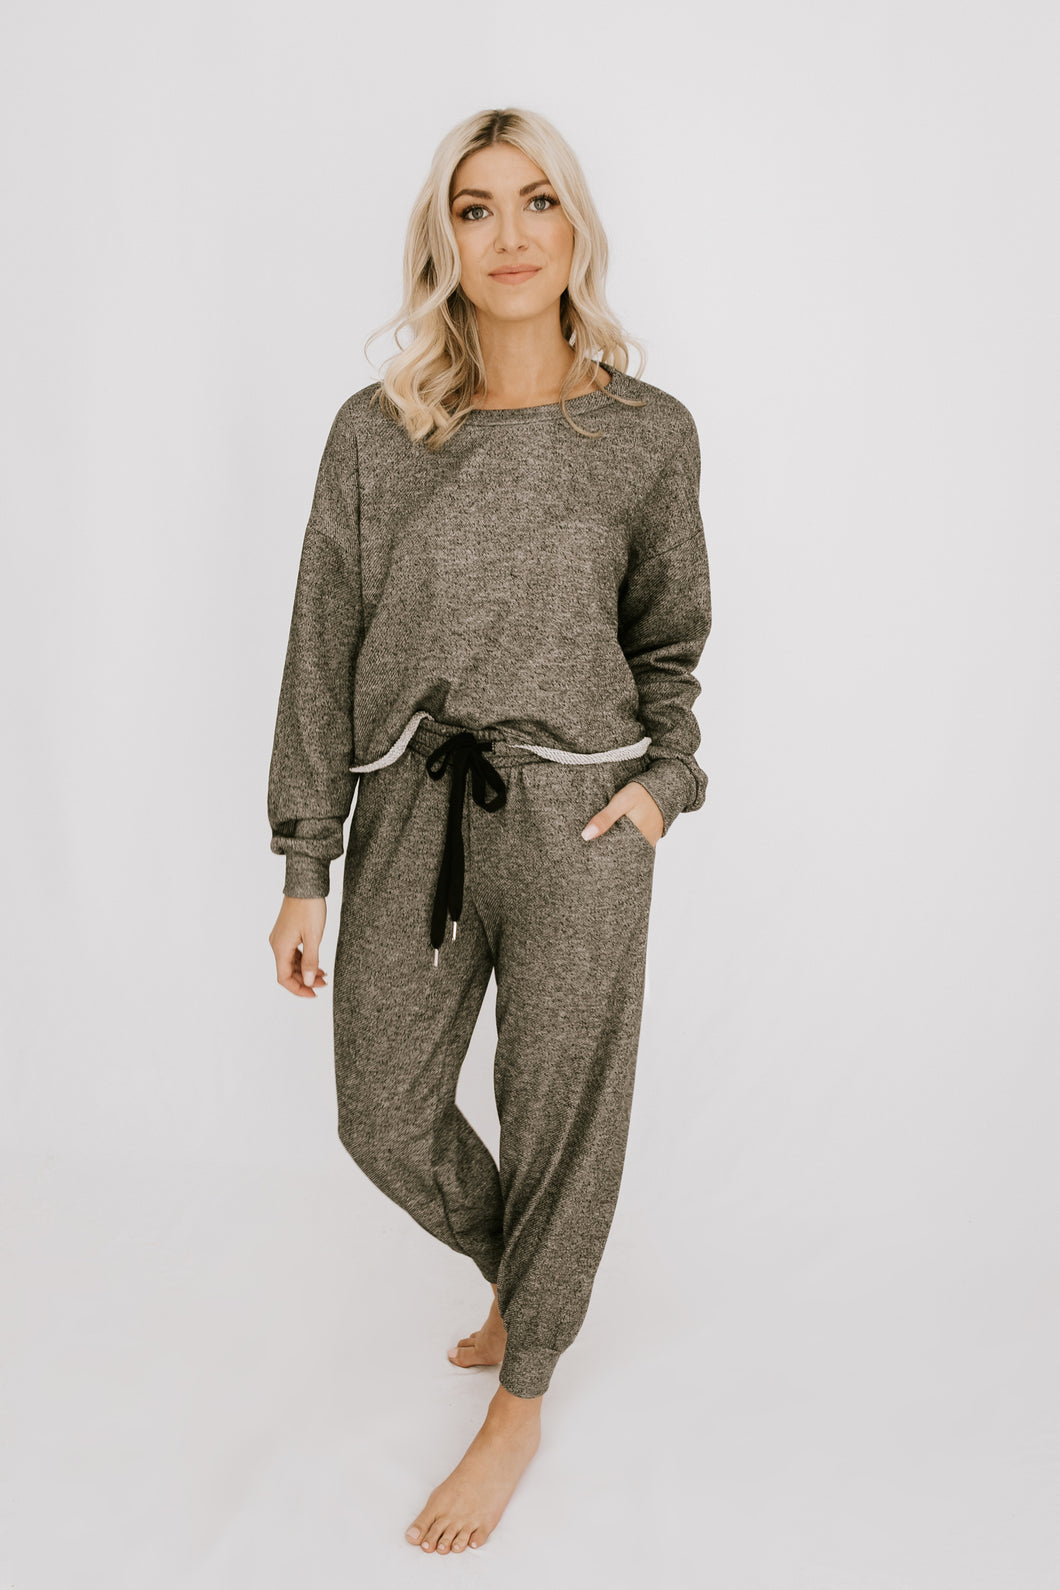 Start Fresh Sweatshirt + Jogger Set - Charcoal